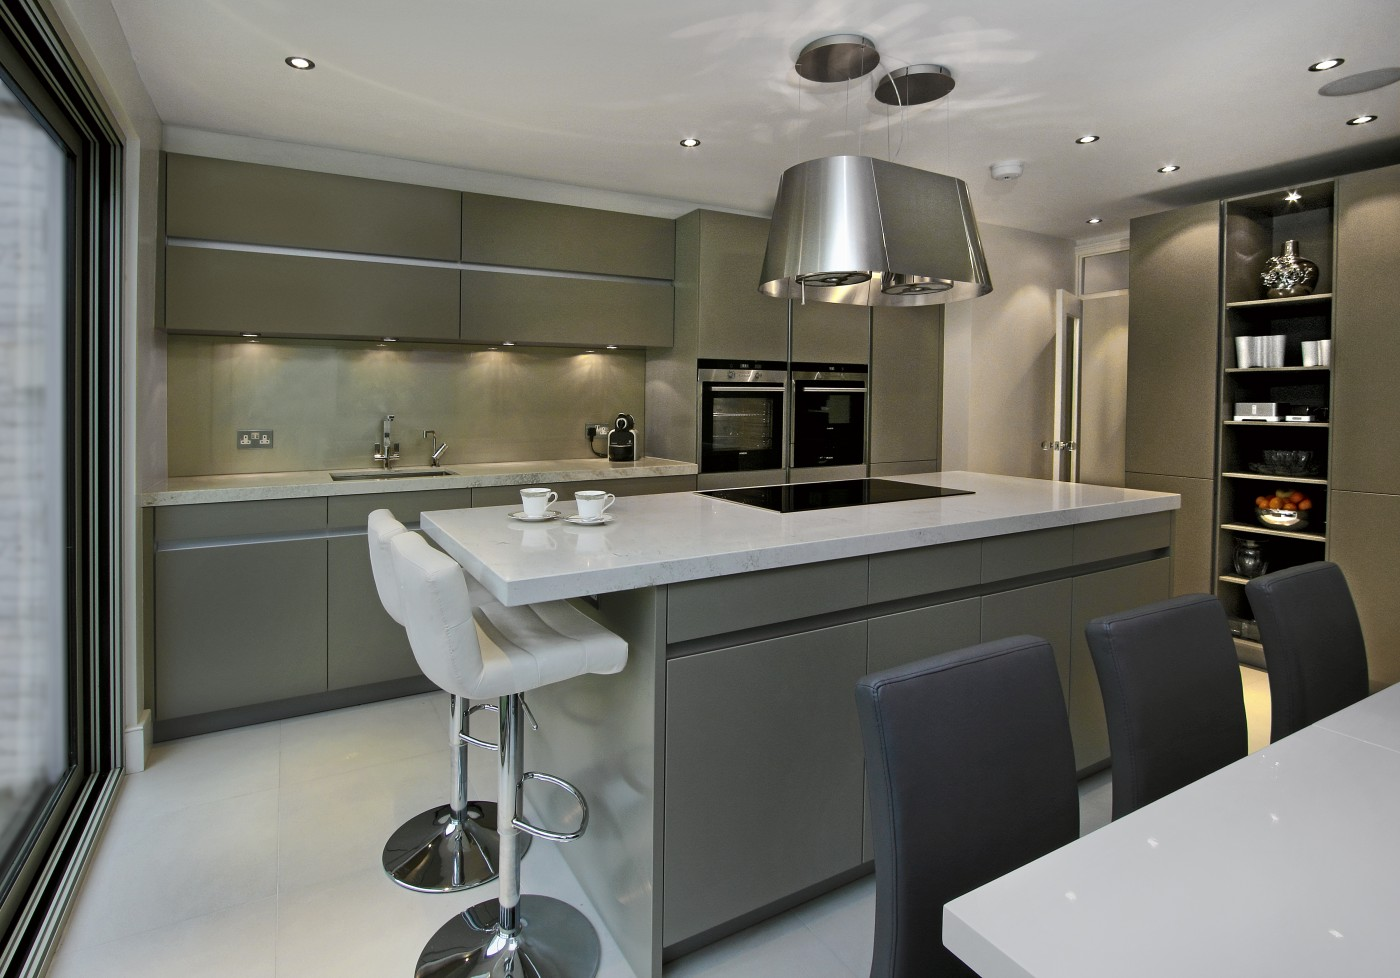 Luxury LEICHT Kitchen Designer Showroom Premium German Kitchens Fulha